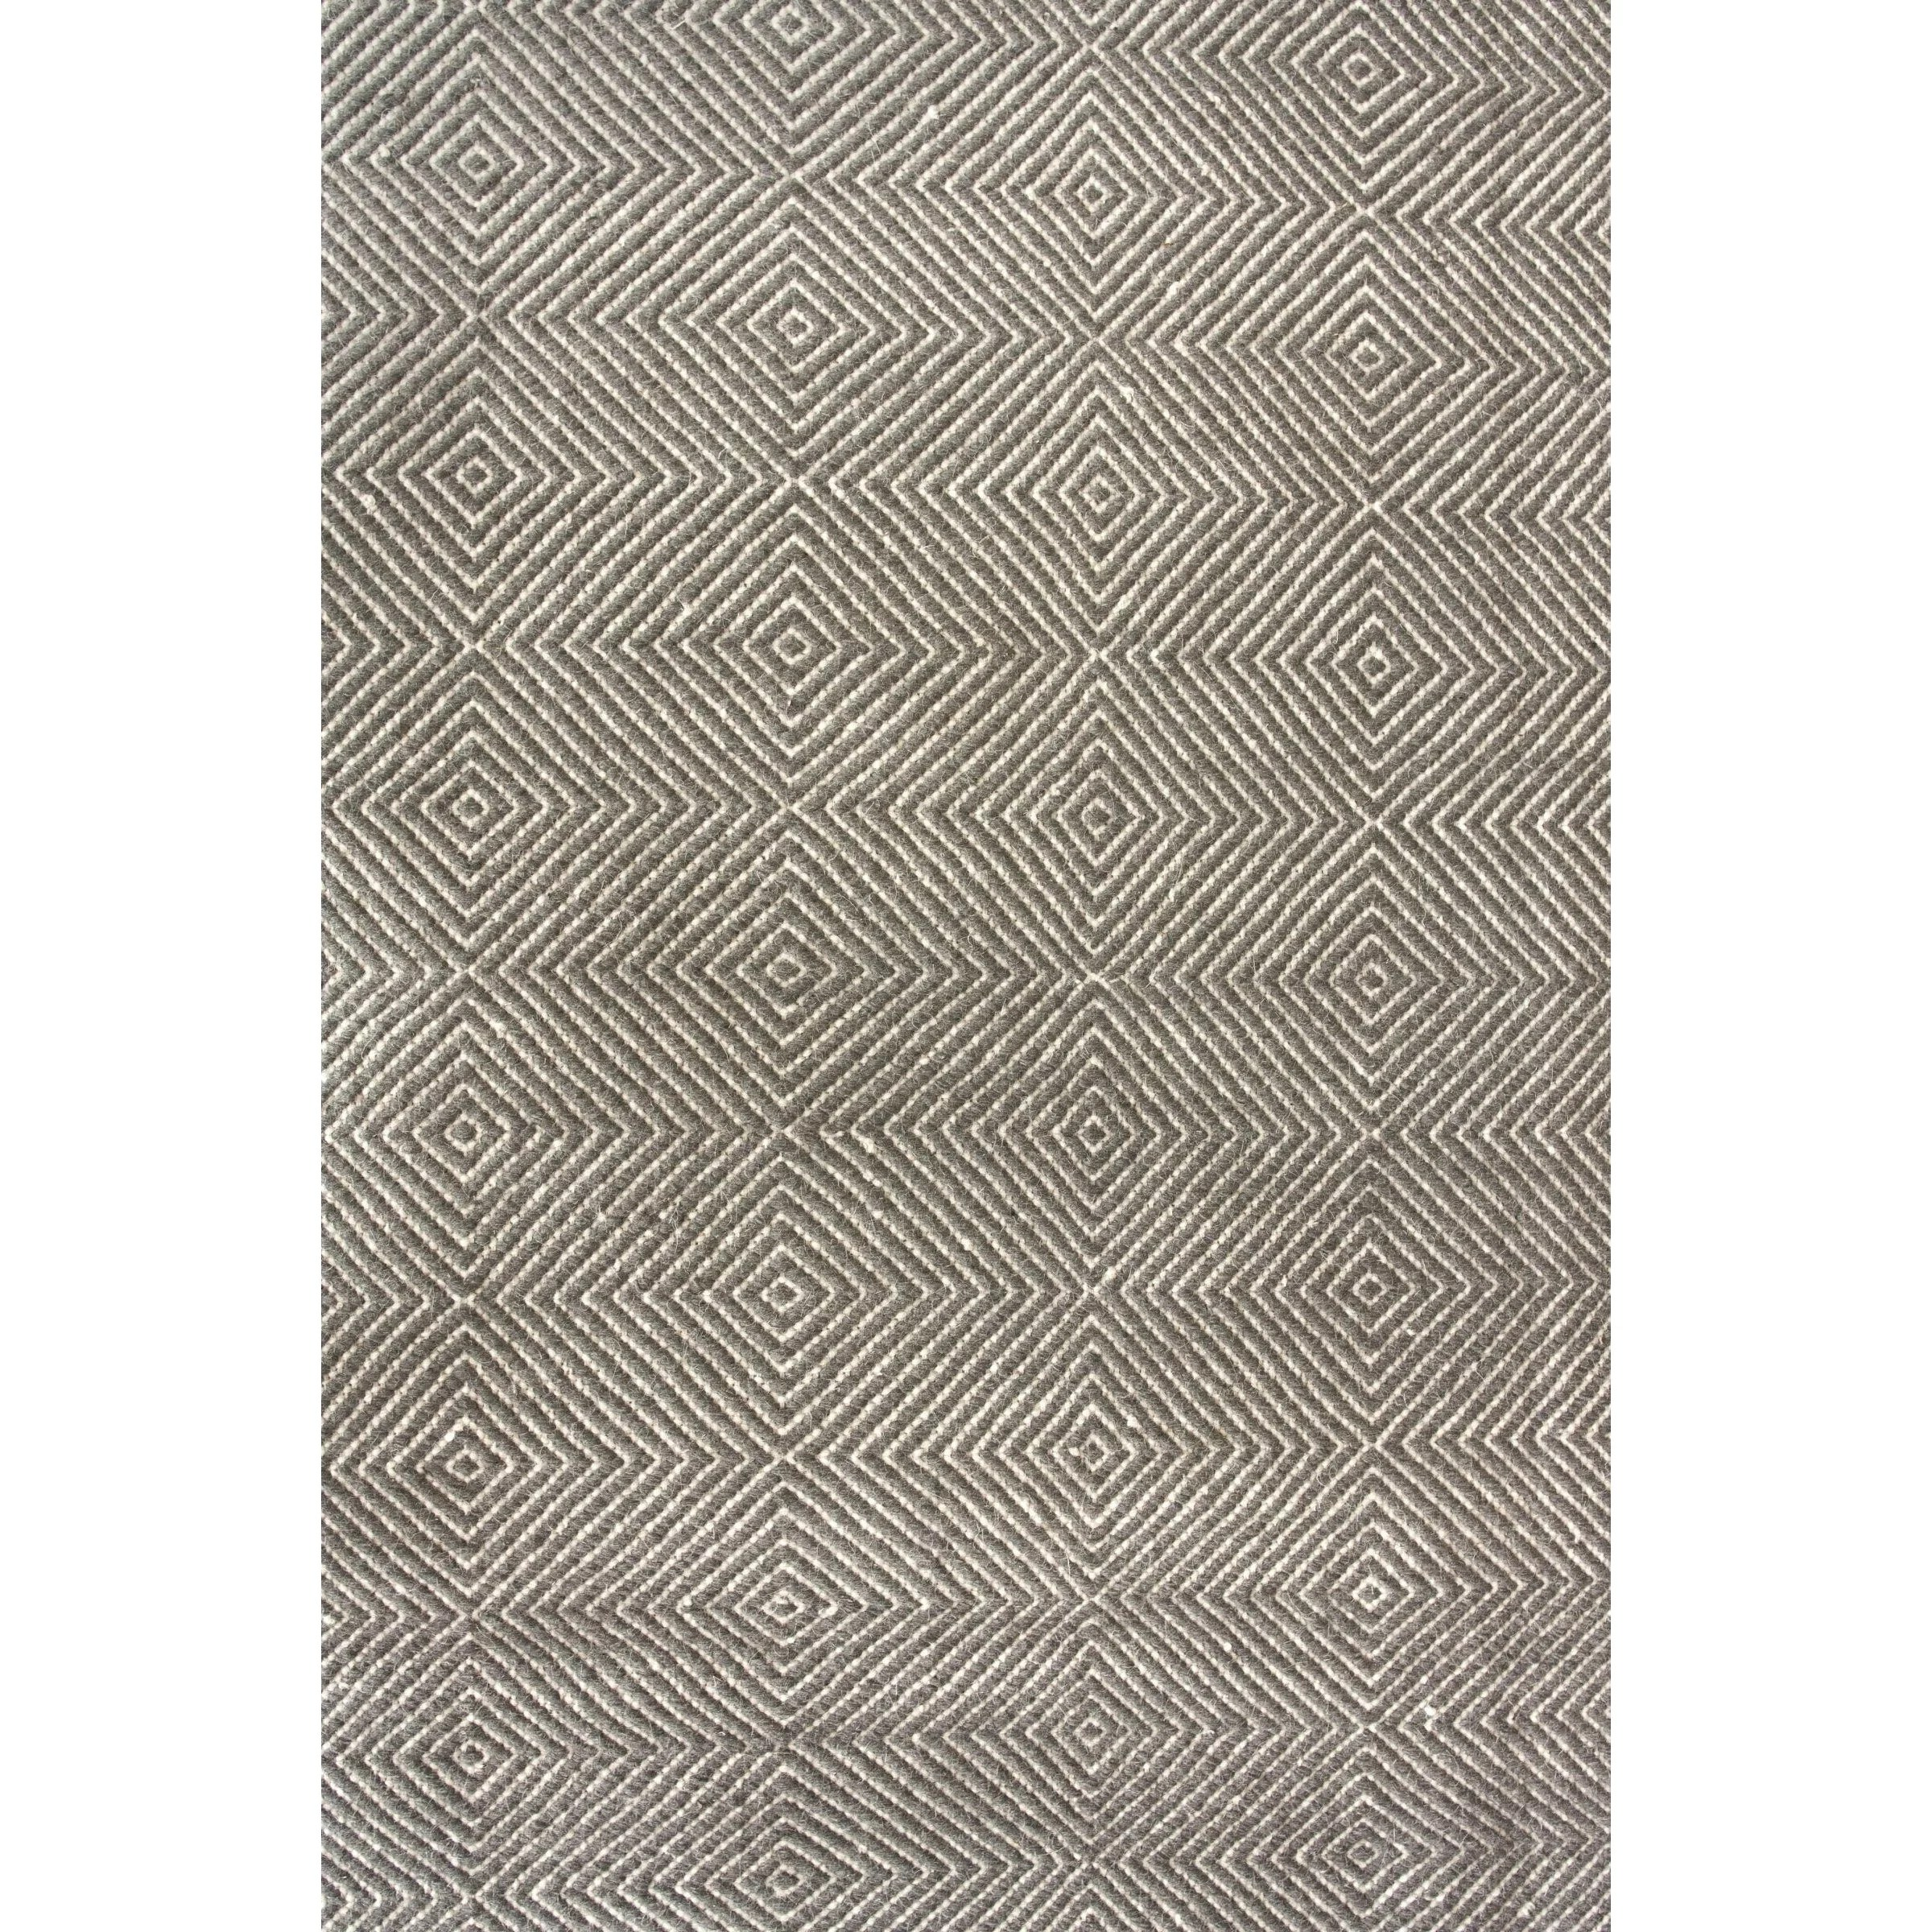 Woven Rugs Mercury Row Marcelo Flat Woven Gray Area Rug And Reviews